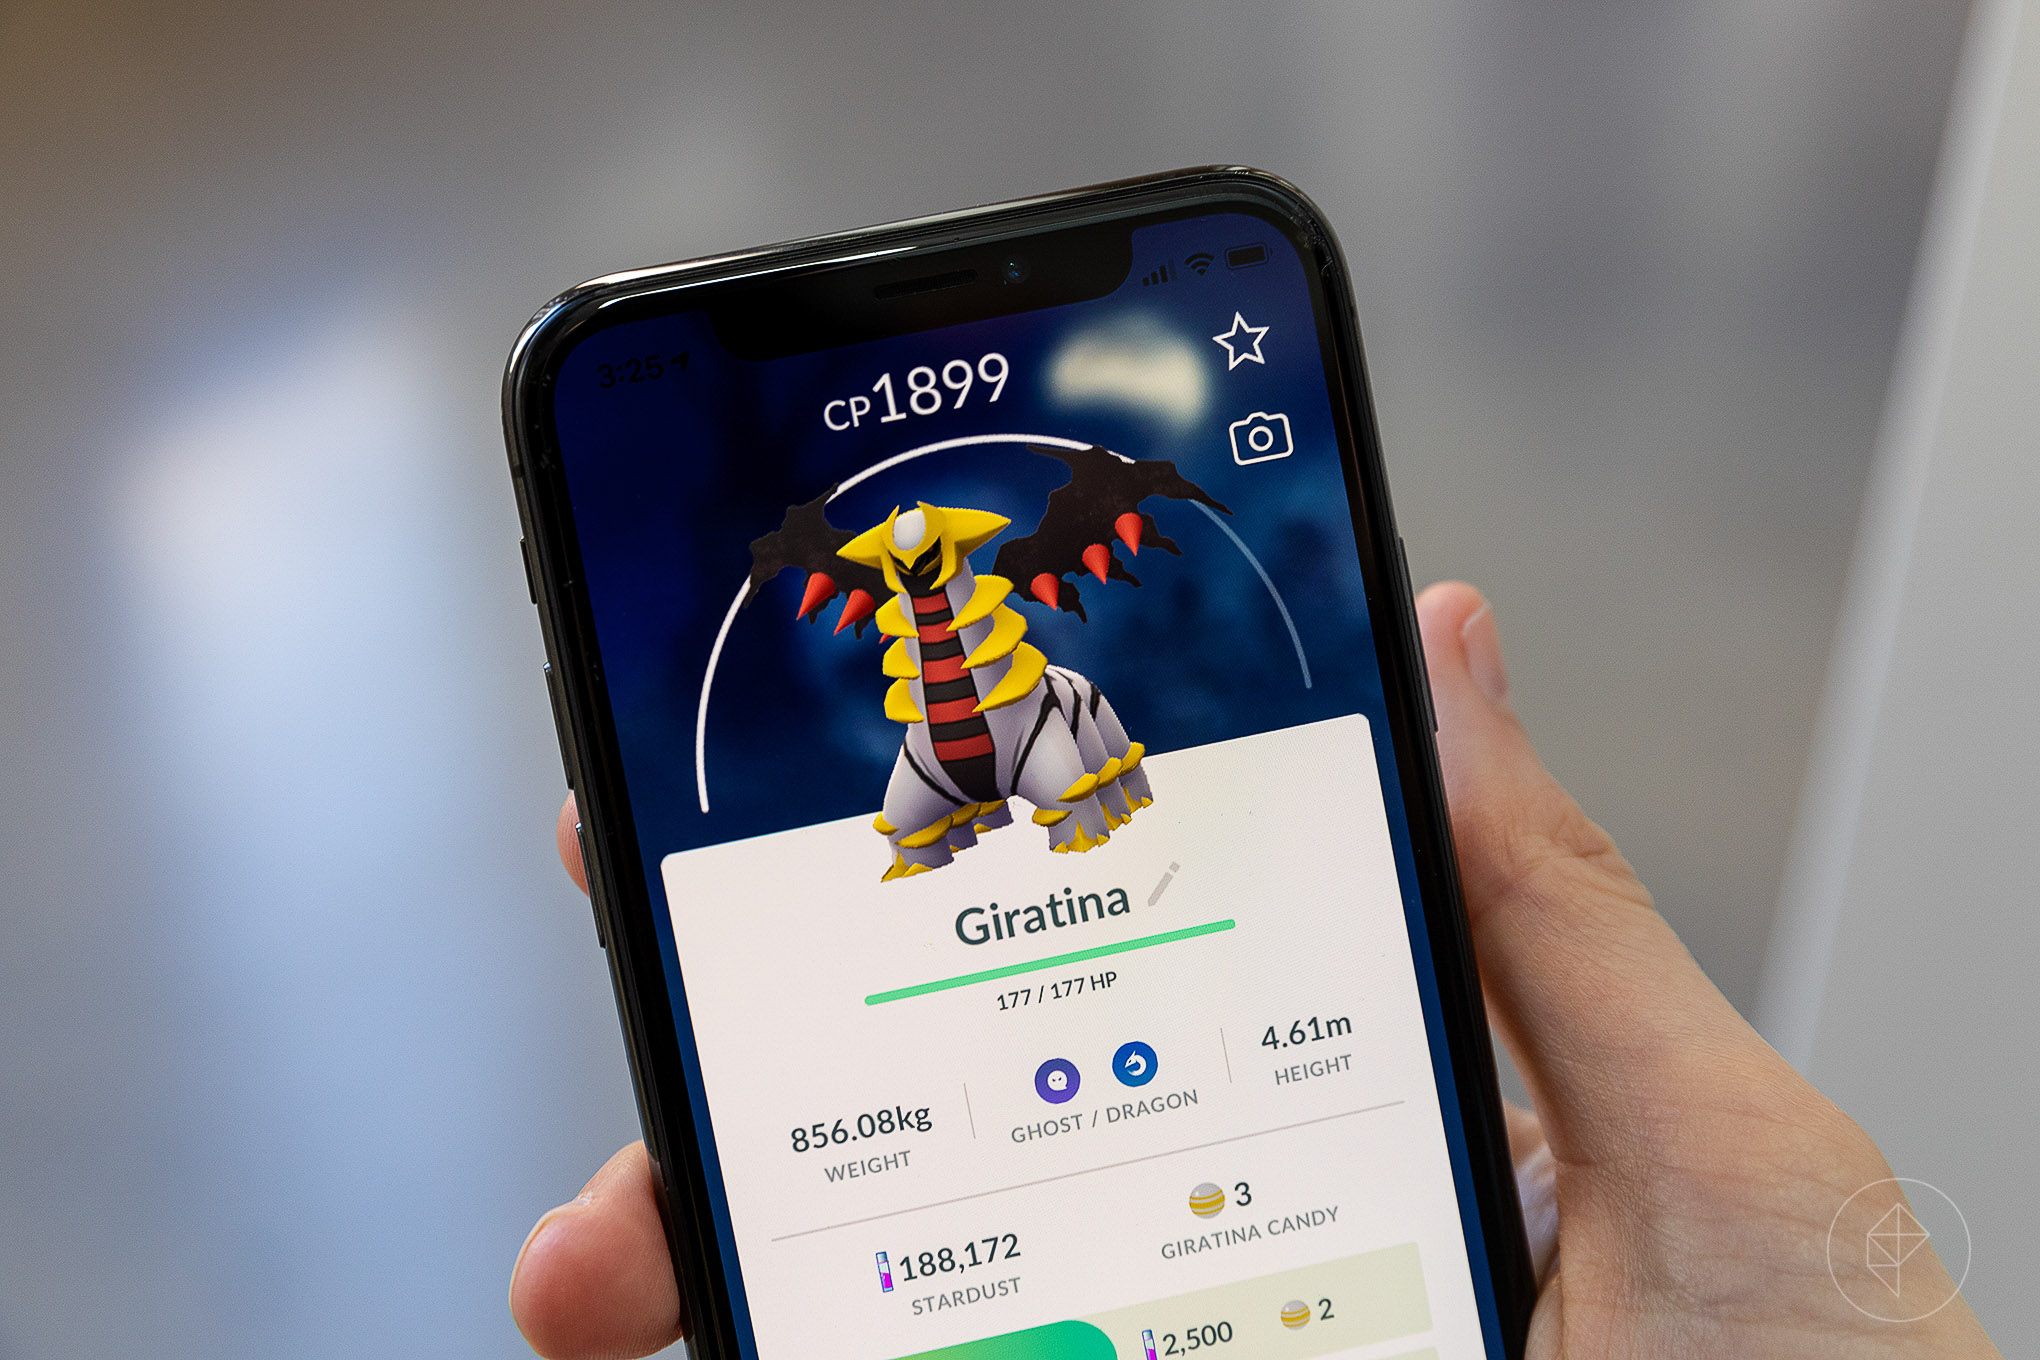 A hand holds up an iPhone displaying Altered Forme Giratina's stat screen in Pokémon Go